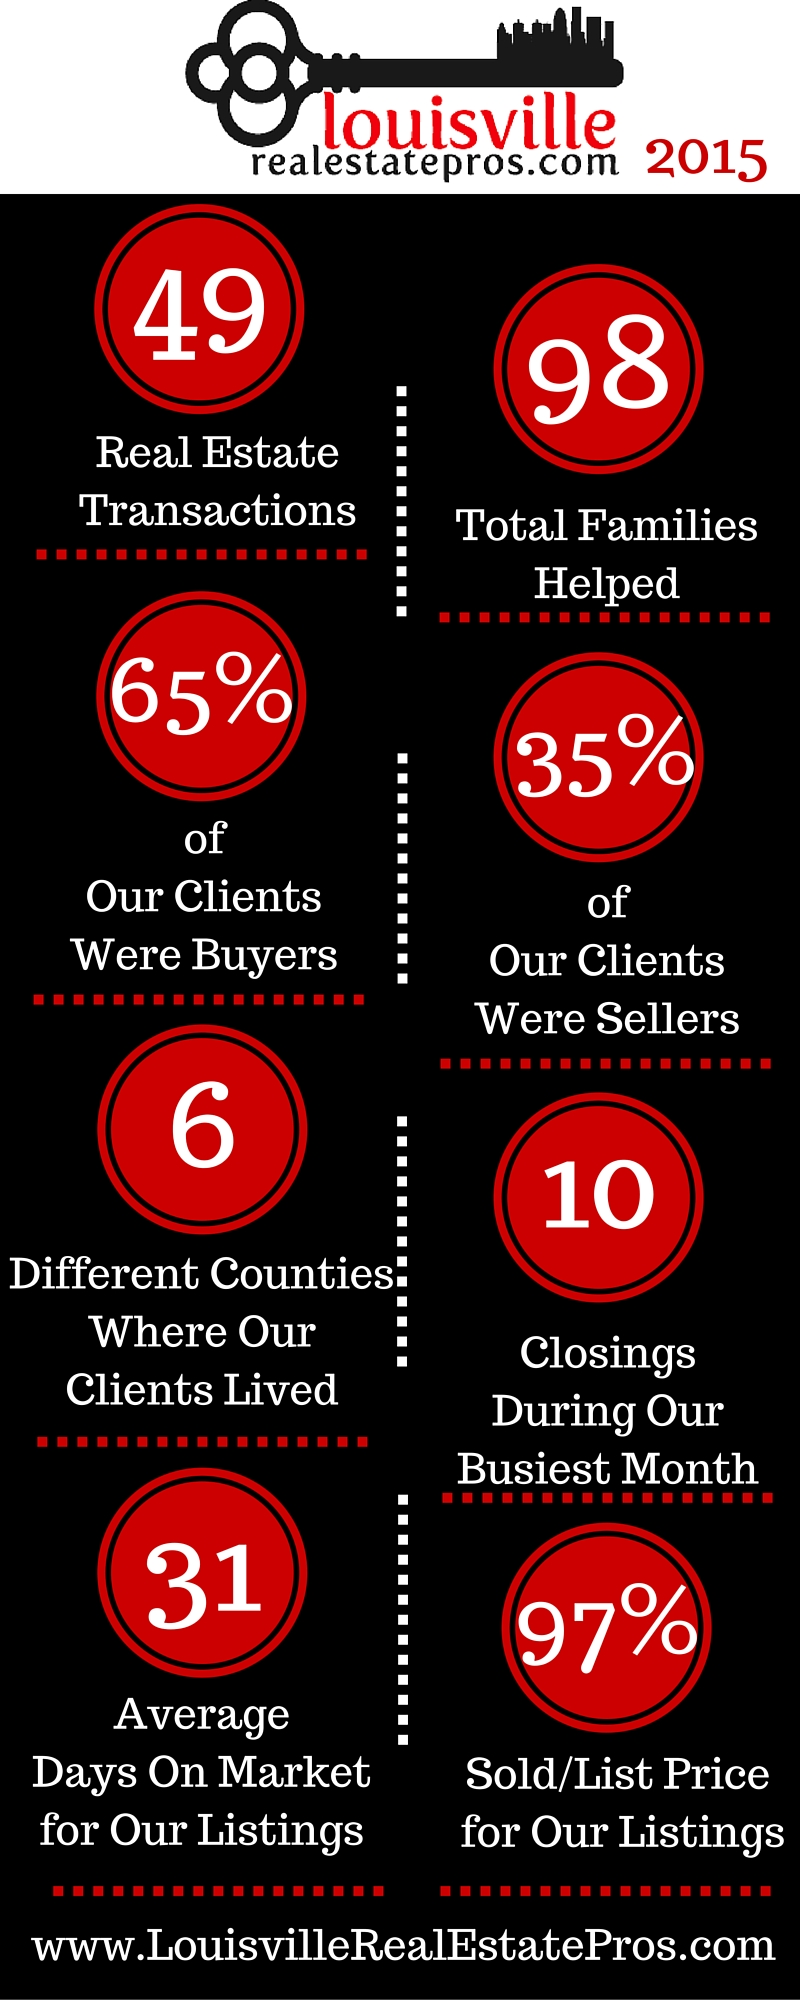 2015 Successes for Louisville Real Estate Pros